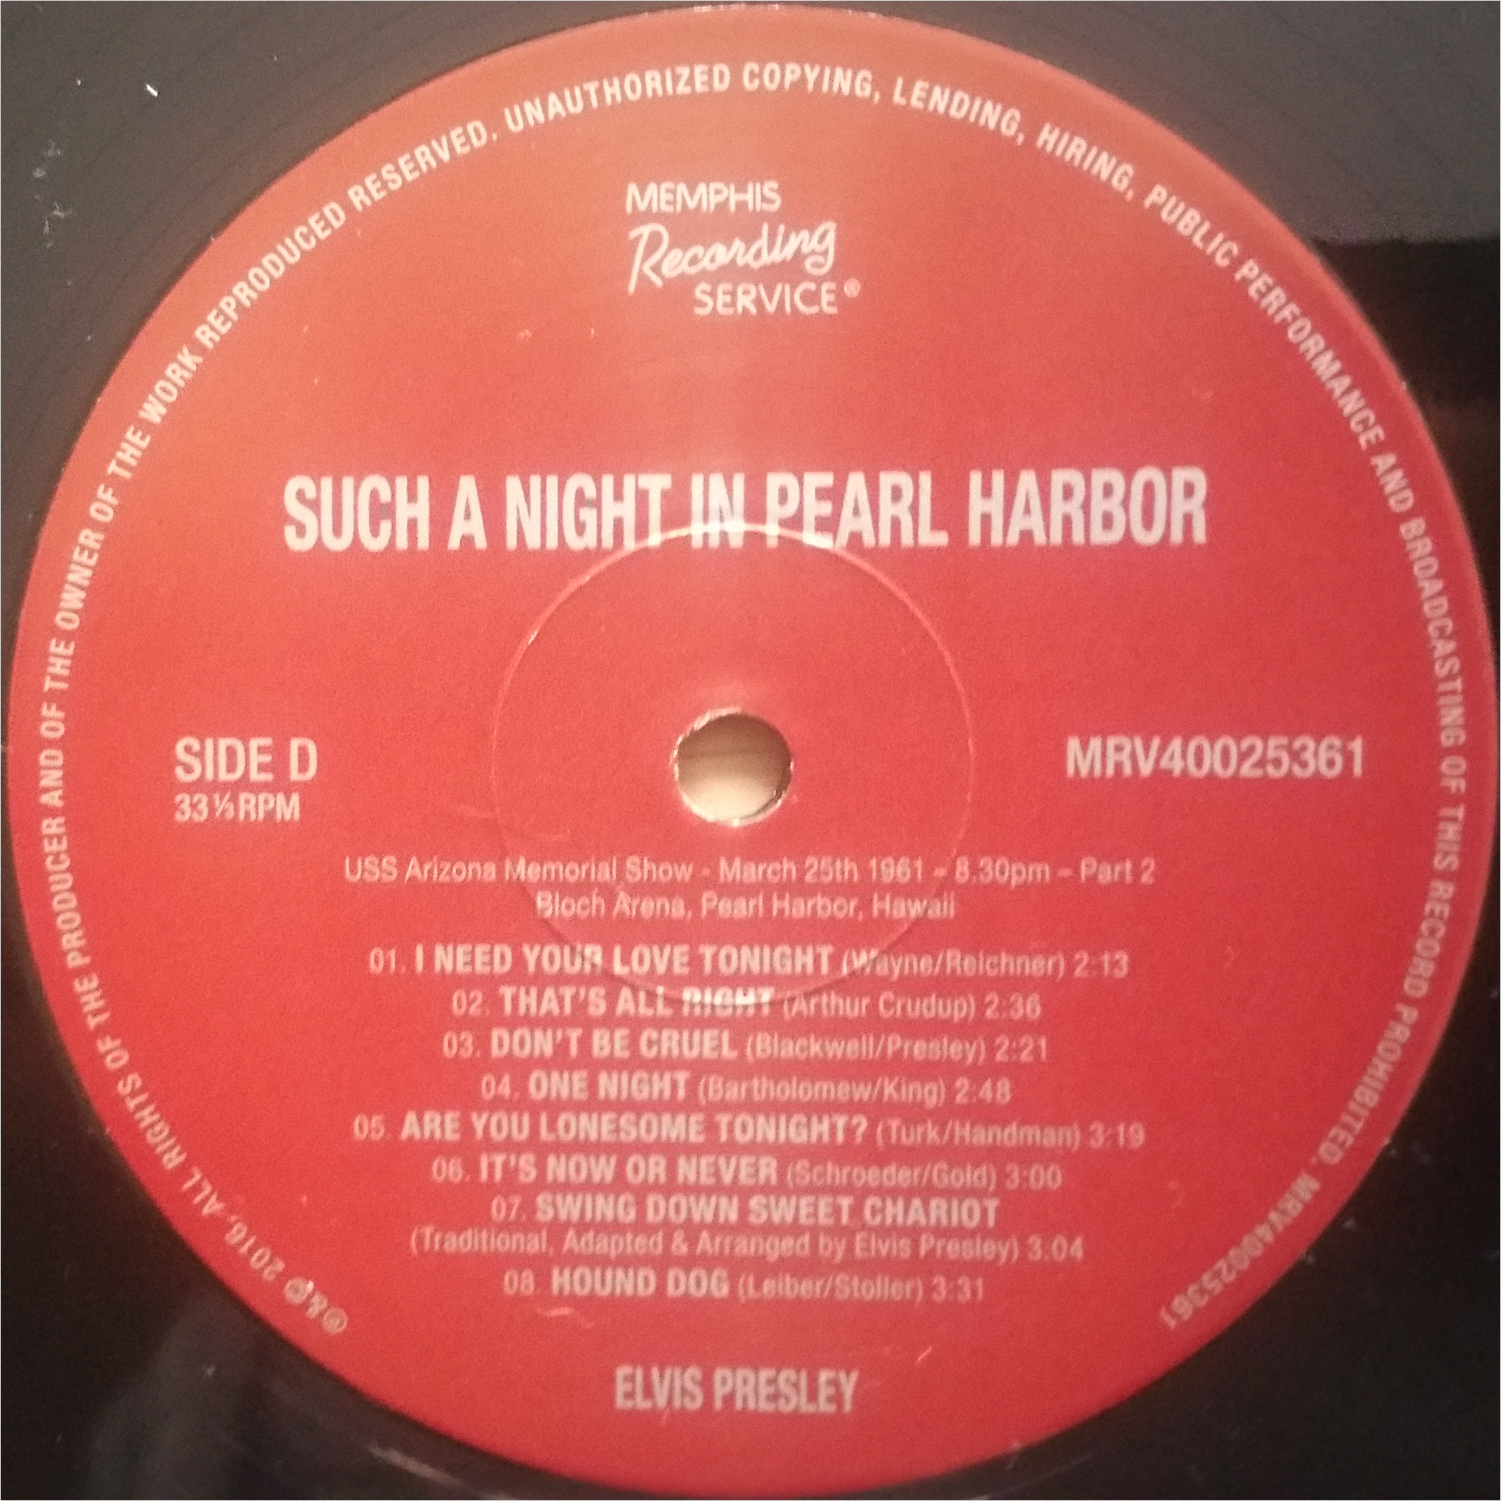 SUCH A NIGHT IN PEARL HARBOR Suchanightinpearlharbvjj9k